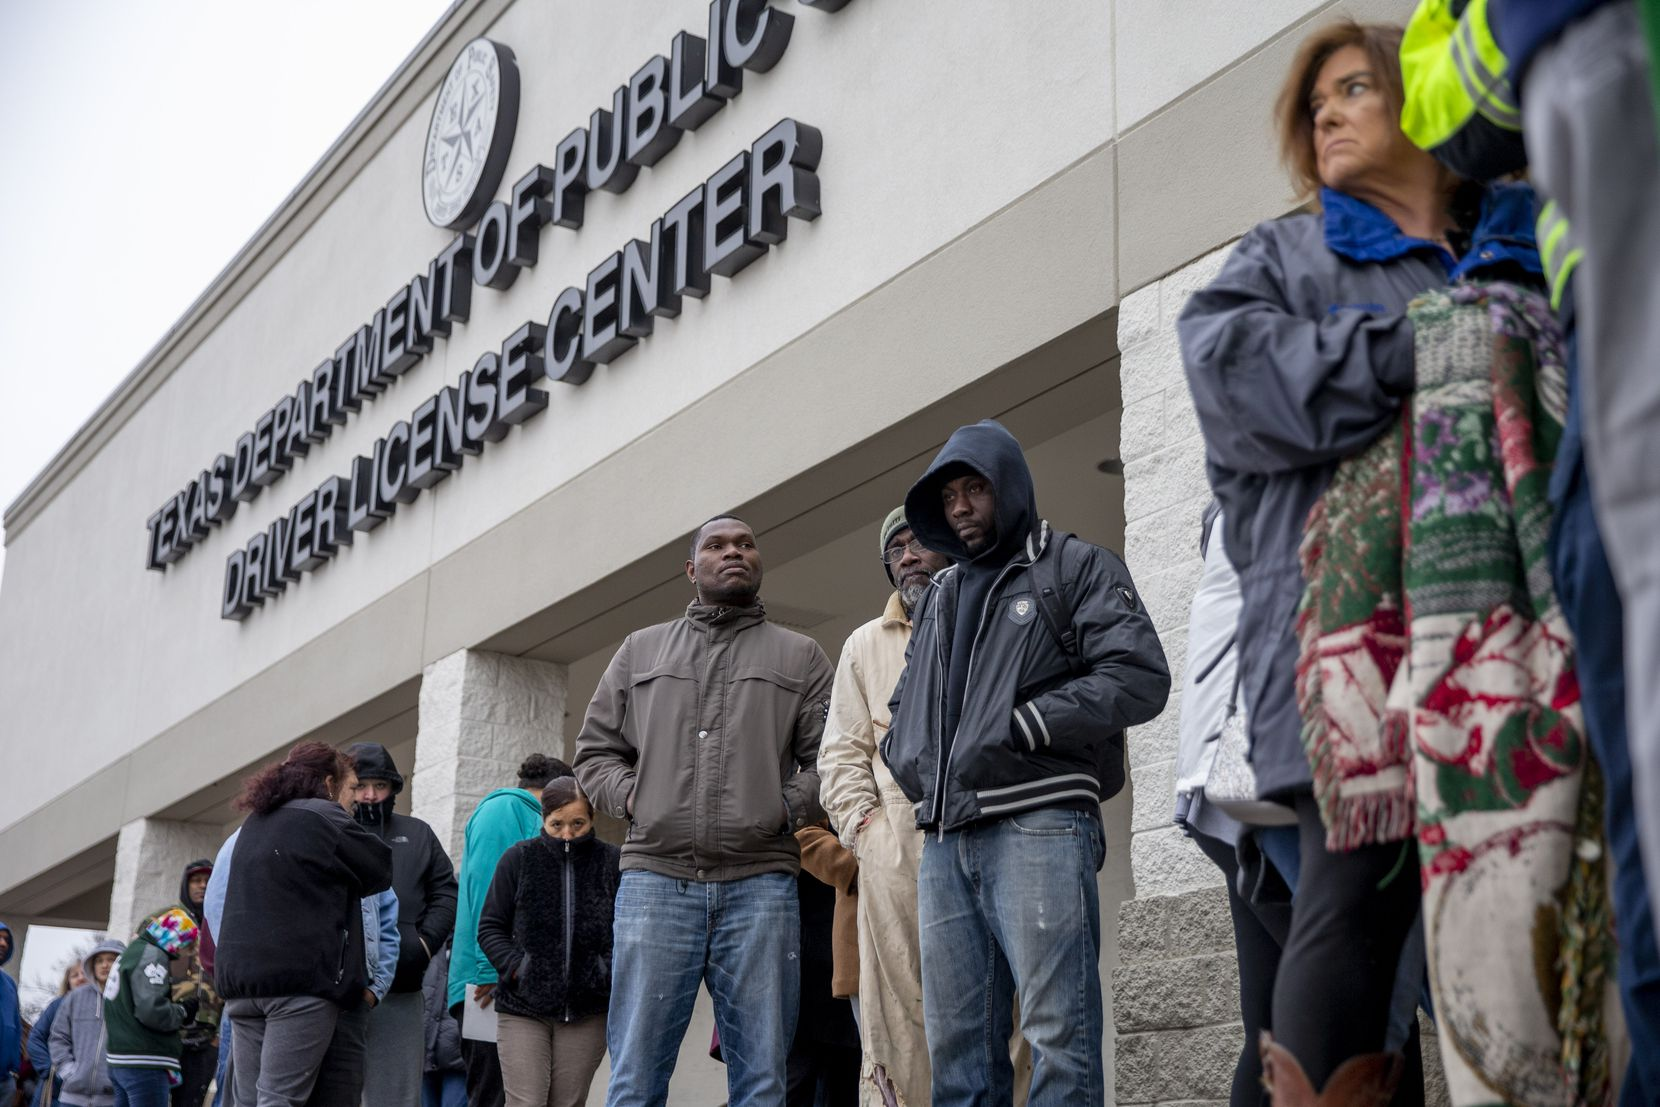 People line up at outside of the entrance at the Texas Department of Public Safety Driver License in Garland, Texas on Friday, March 1, 2019.